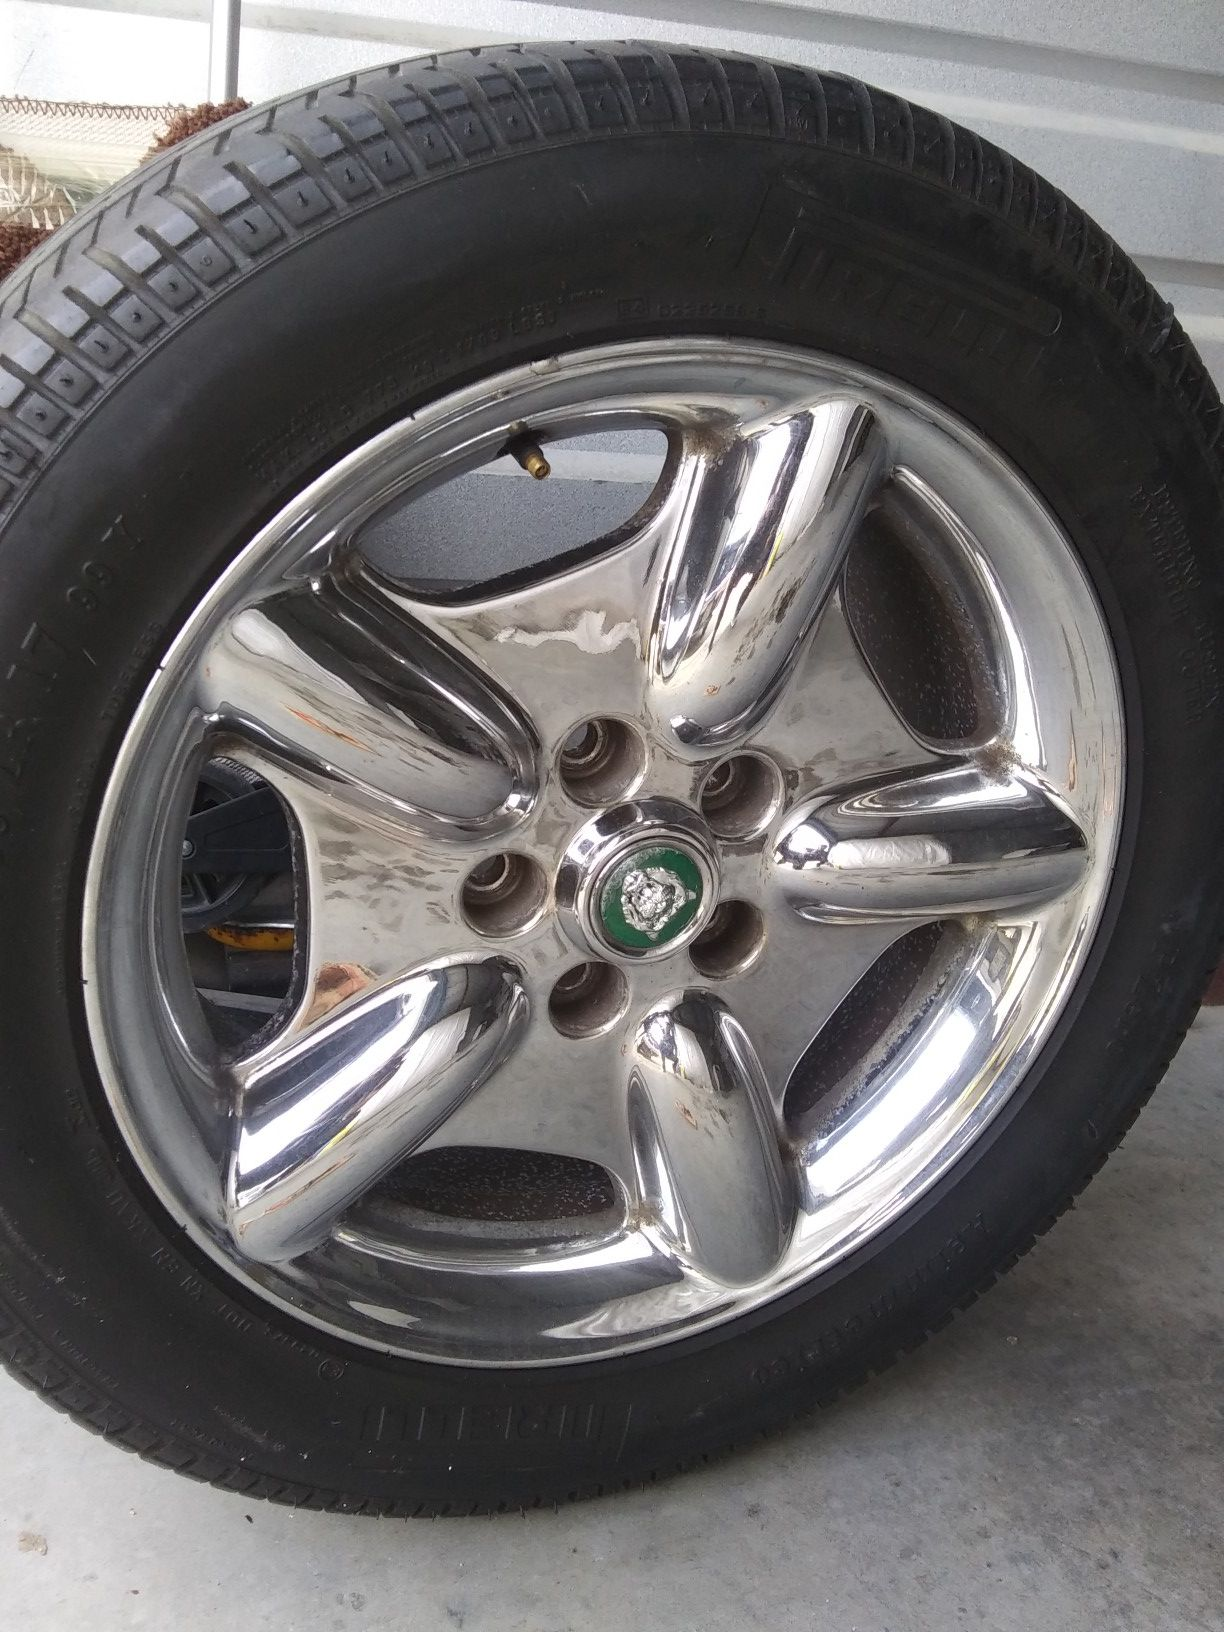 Jaguar 17 inch chrome revolver rims set of 4... One tire needs to be replaced, all Pirelli! Minor scuffs but still a nice set af wheels..